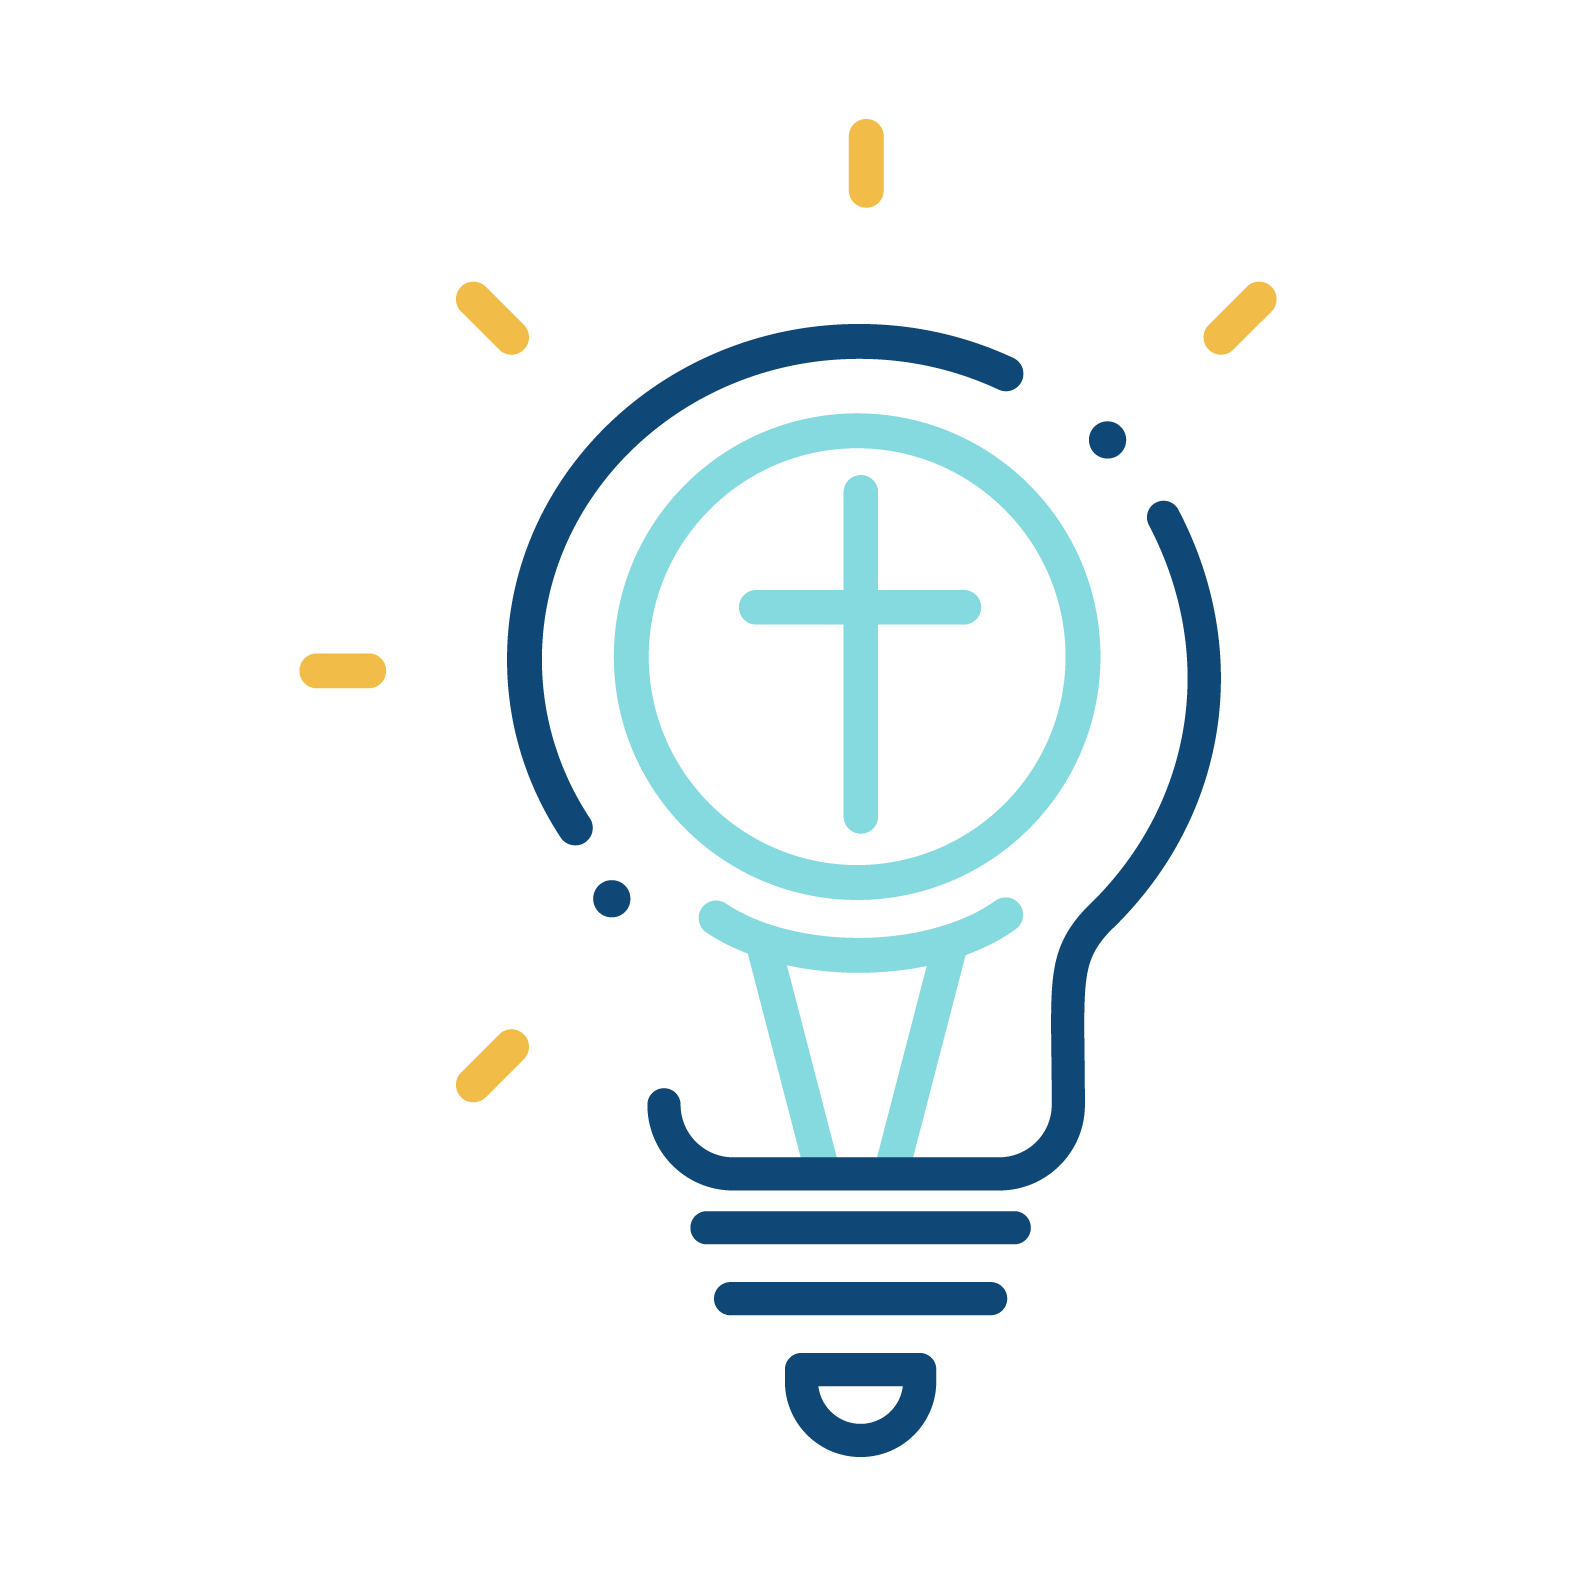 Lightbulb_Icon-01